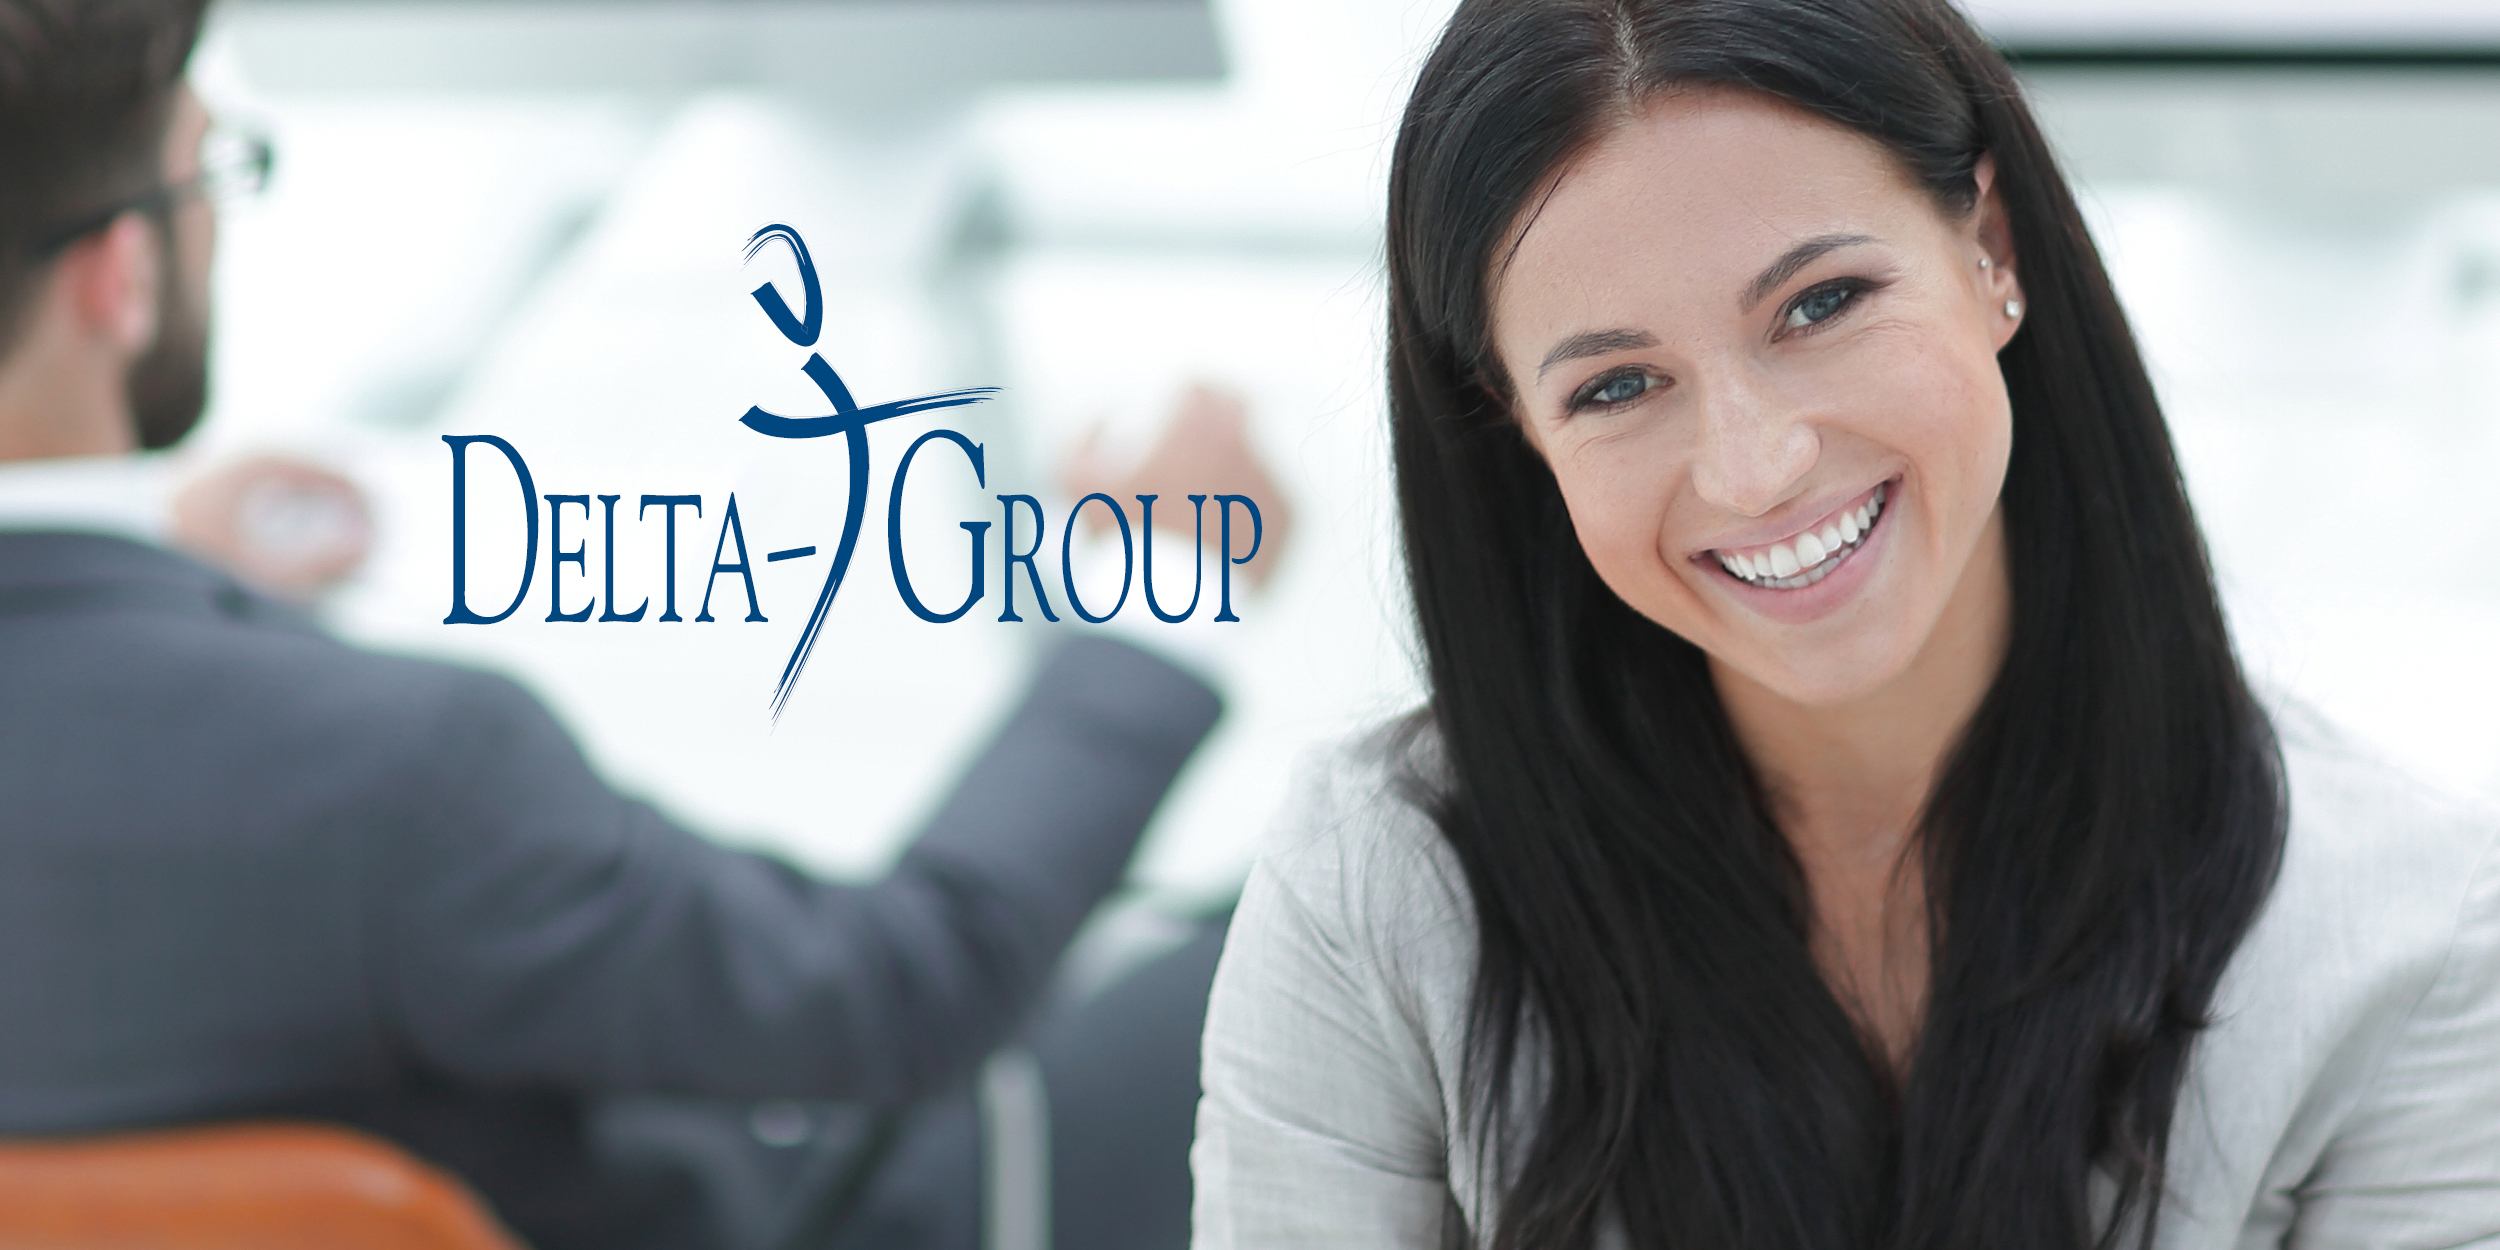 Delta-T Group - Direct Support Professional (DSP) banner image